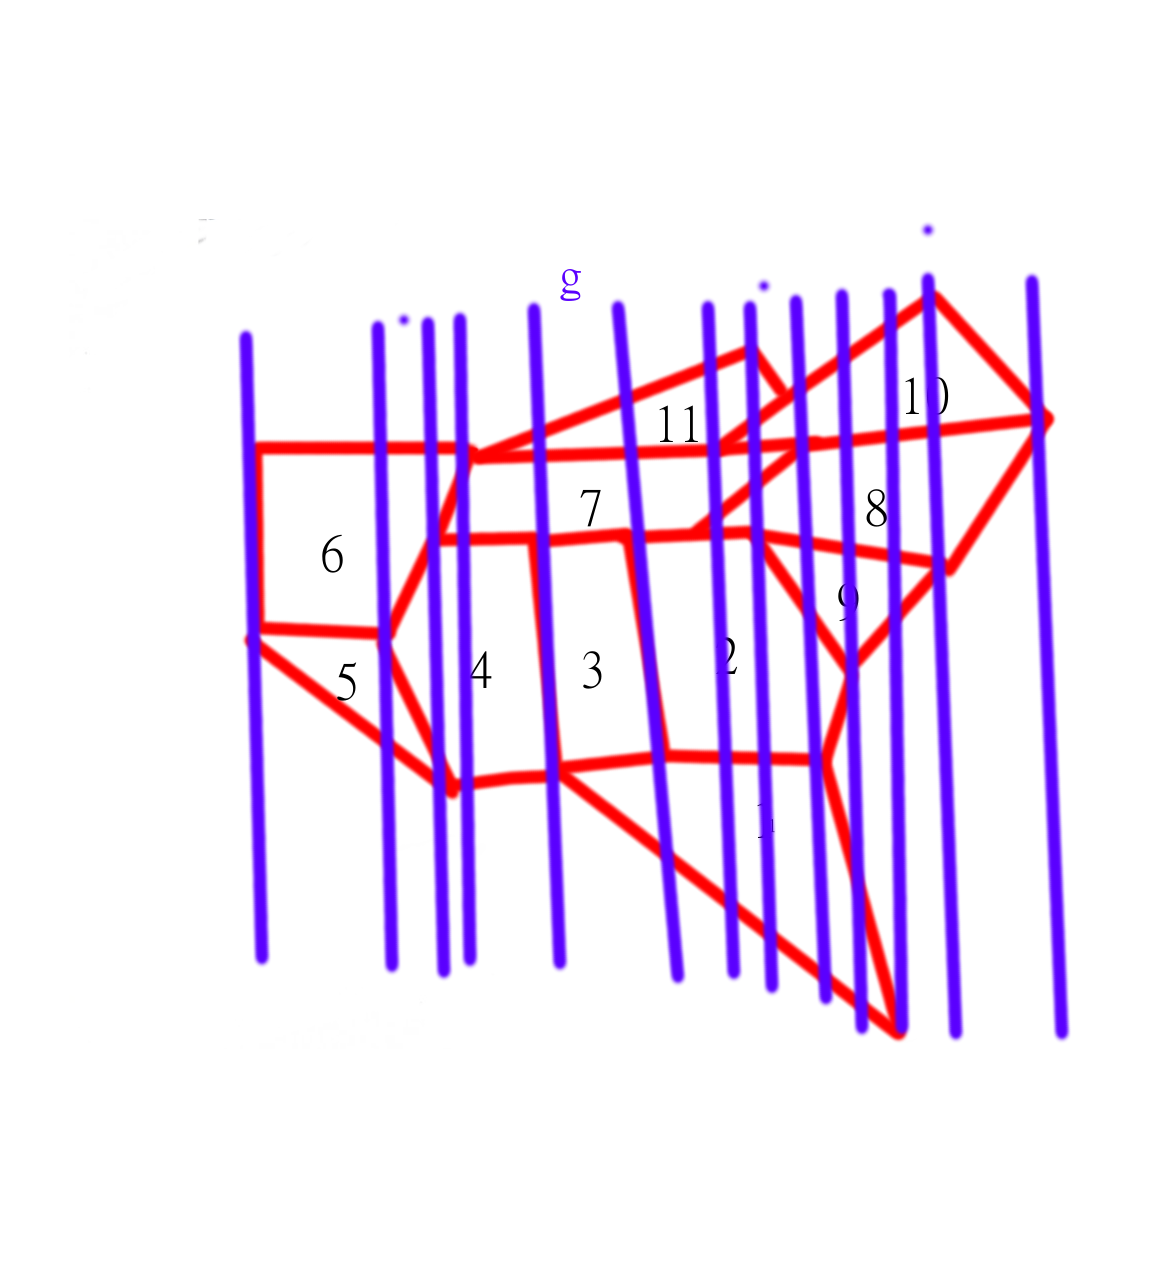 and now the next step is to do the same thing but with horizontal lines